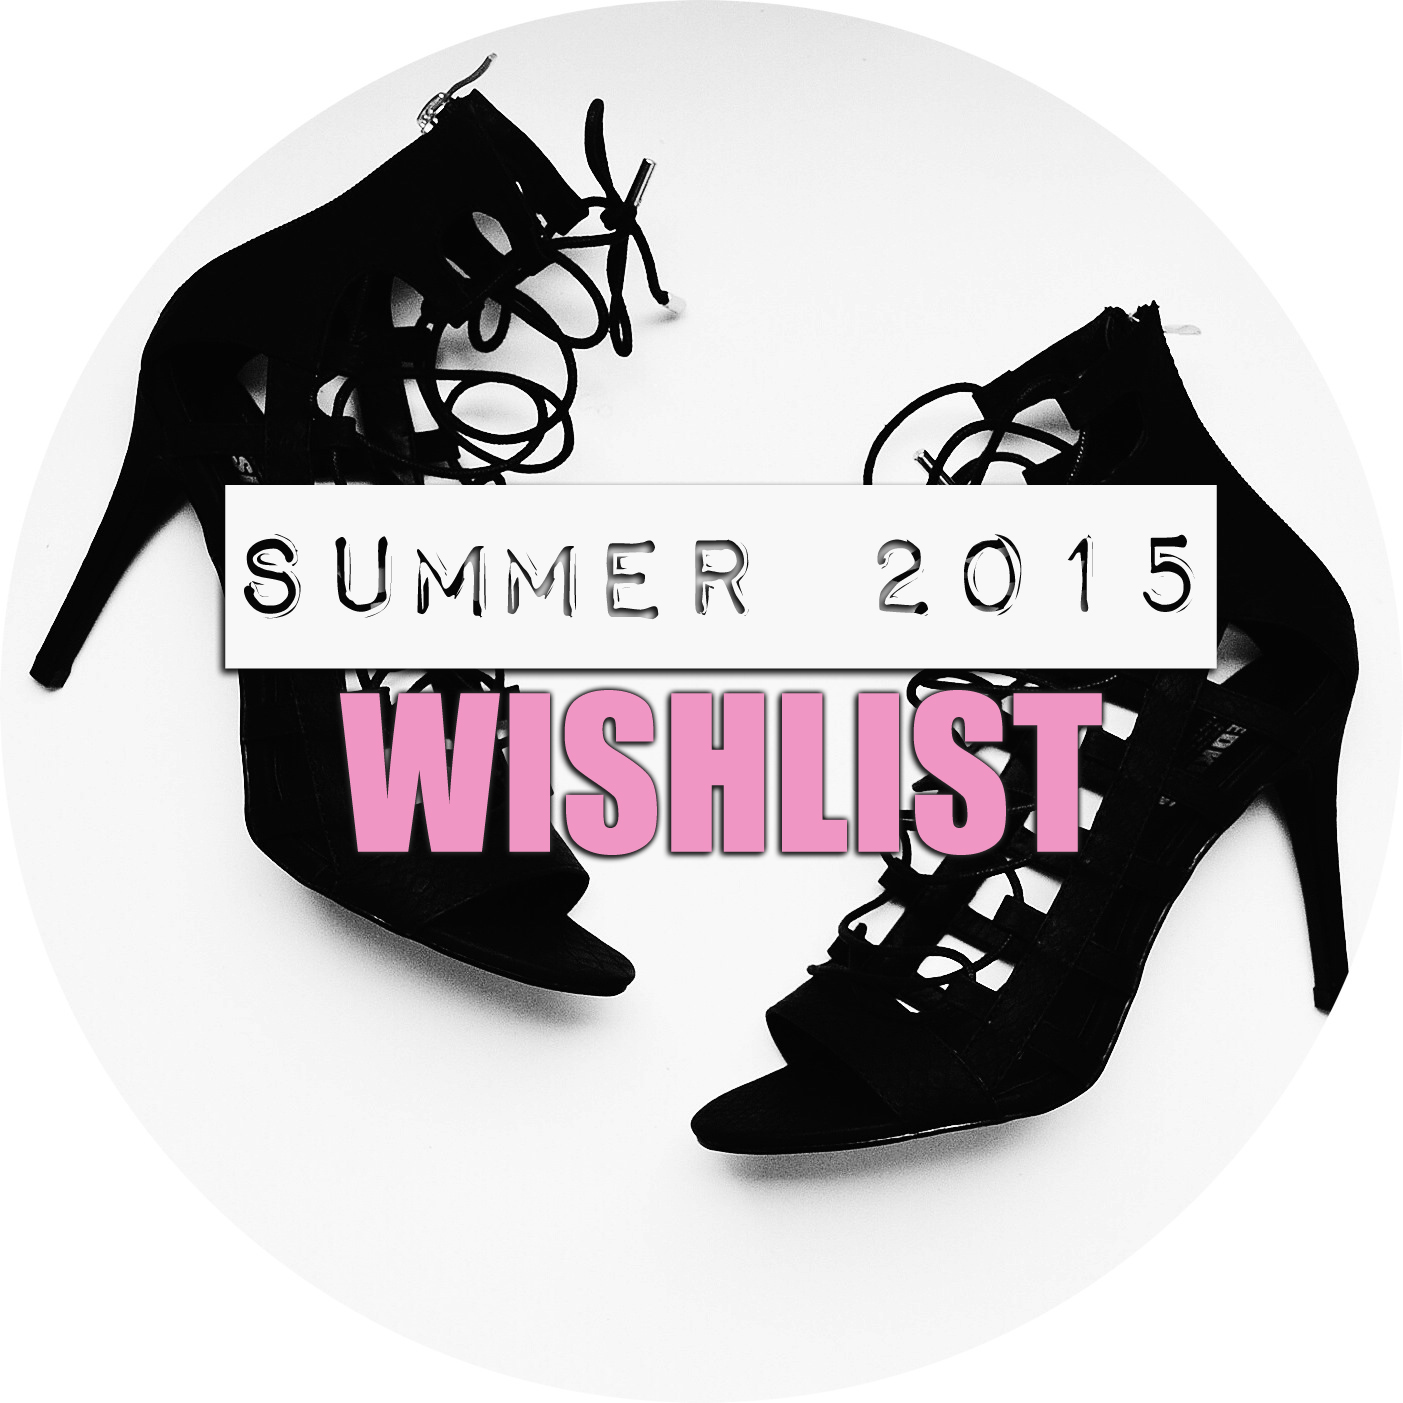 Summer 2015 Wishlist